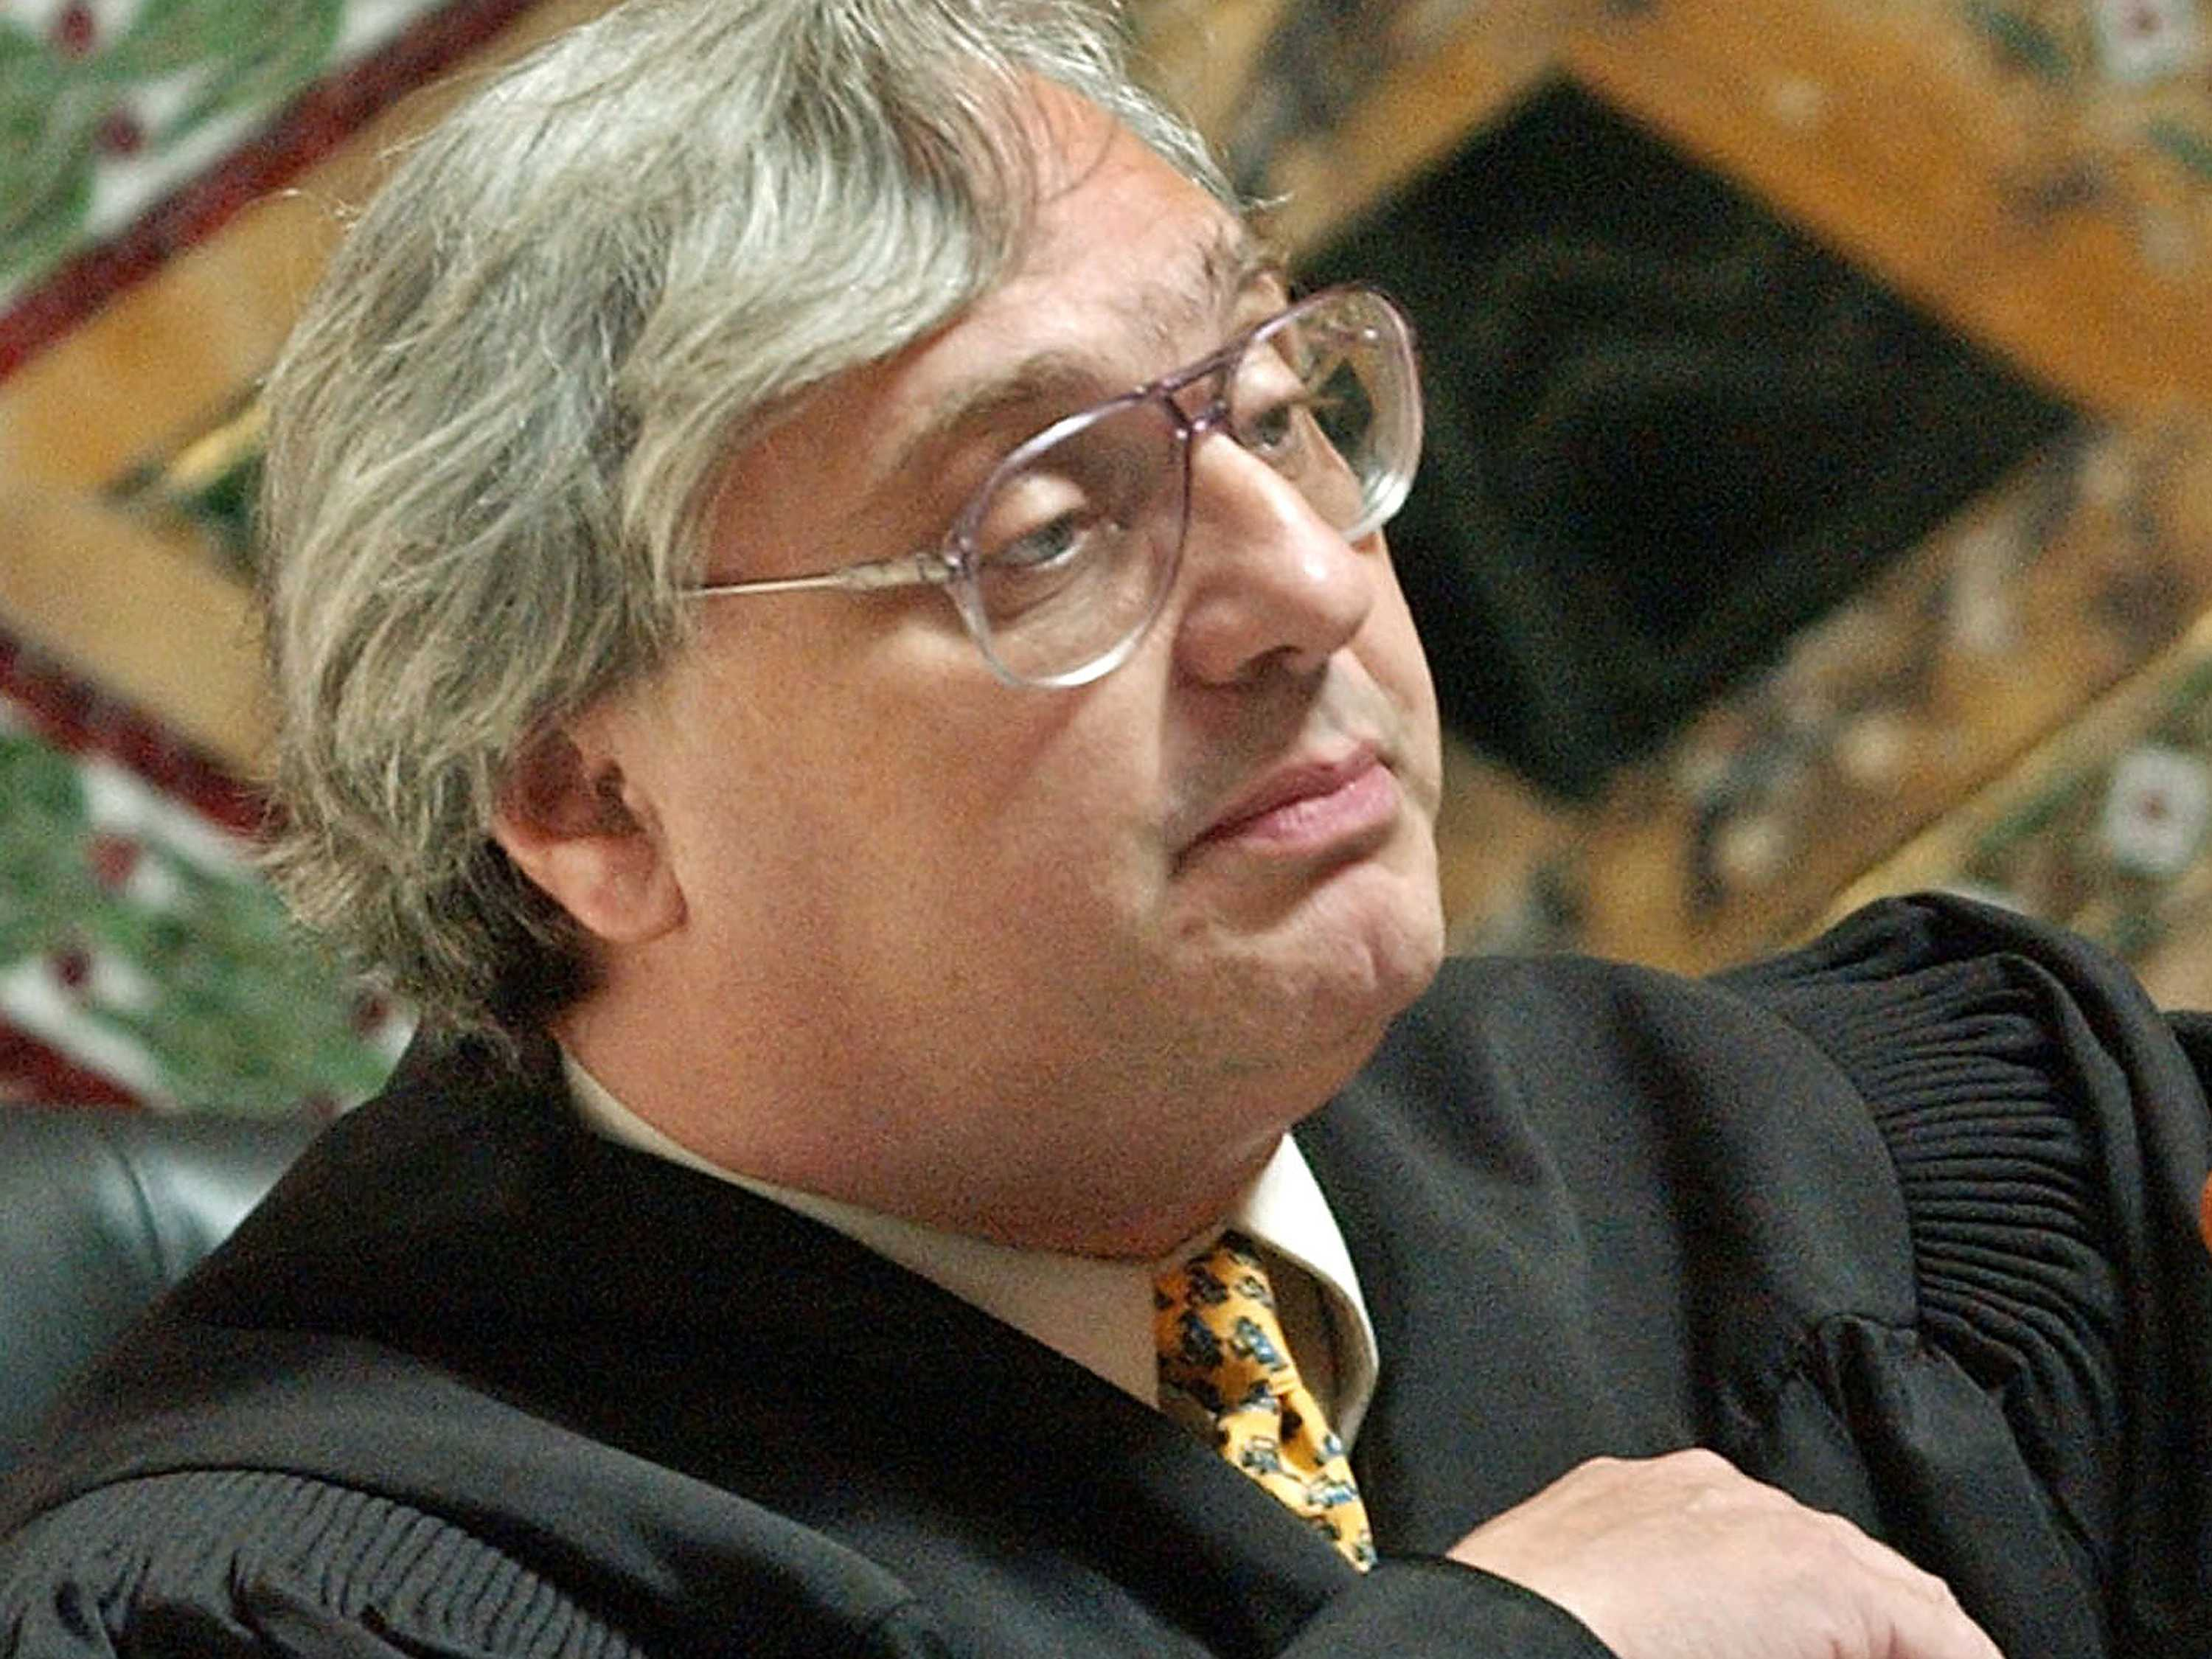 US Judge Steps Down After Accusations of Sexual Misconduct